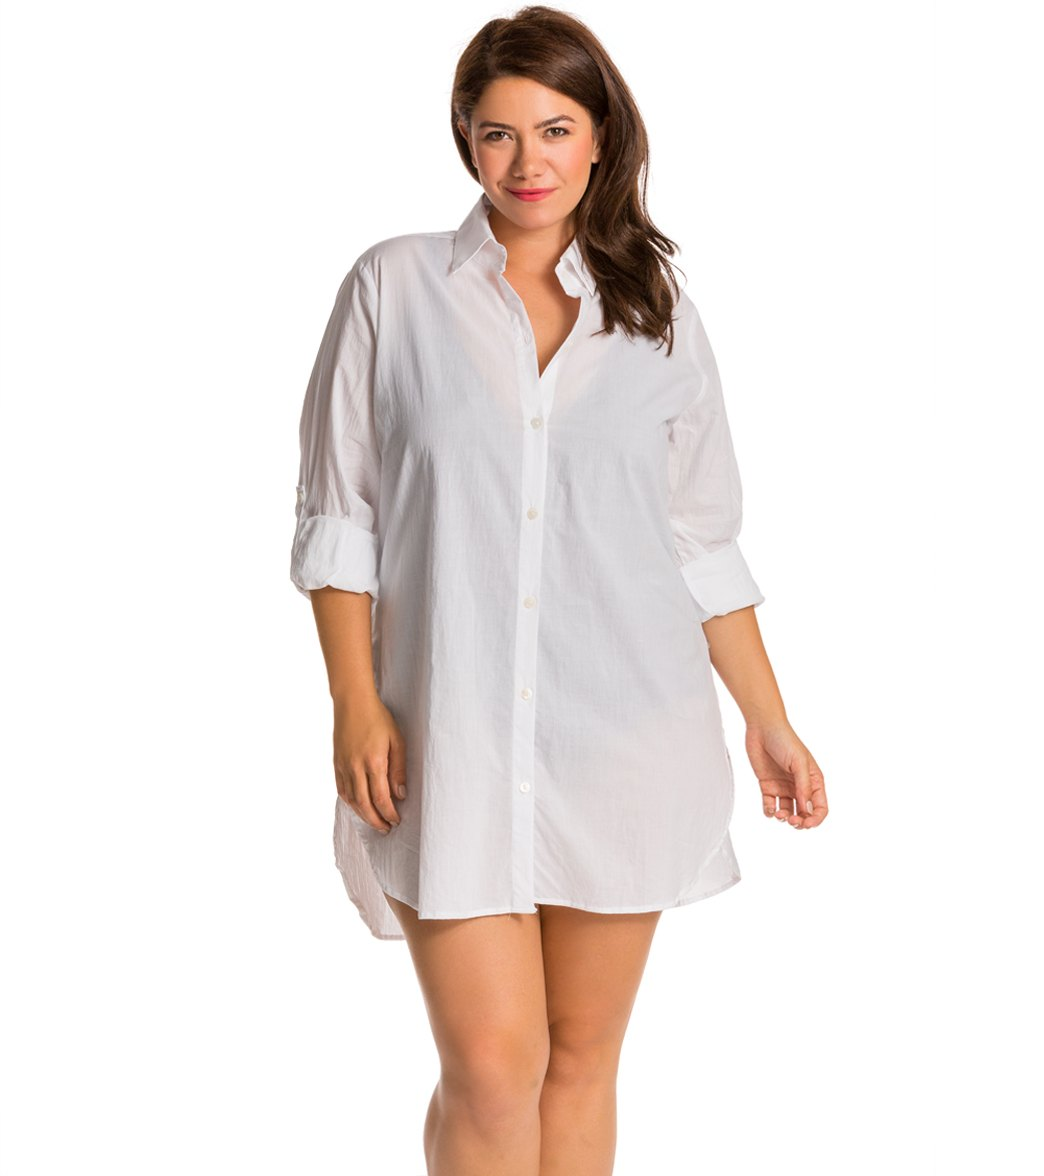 0da7d16a64ed3 Tommy Bahama Plus Size Crinkle Boyfriend Cover Up Shirt at SwimOutlet.com - Free  Shipping